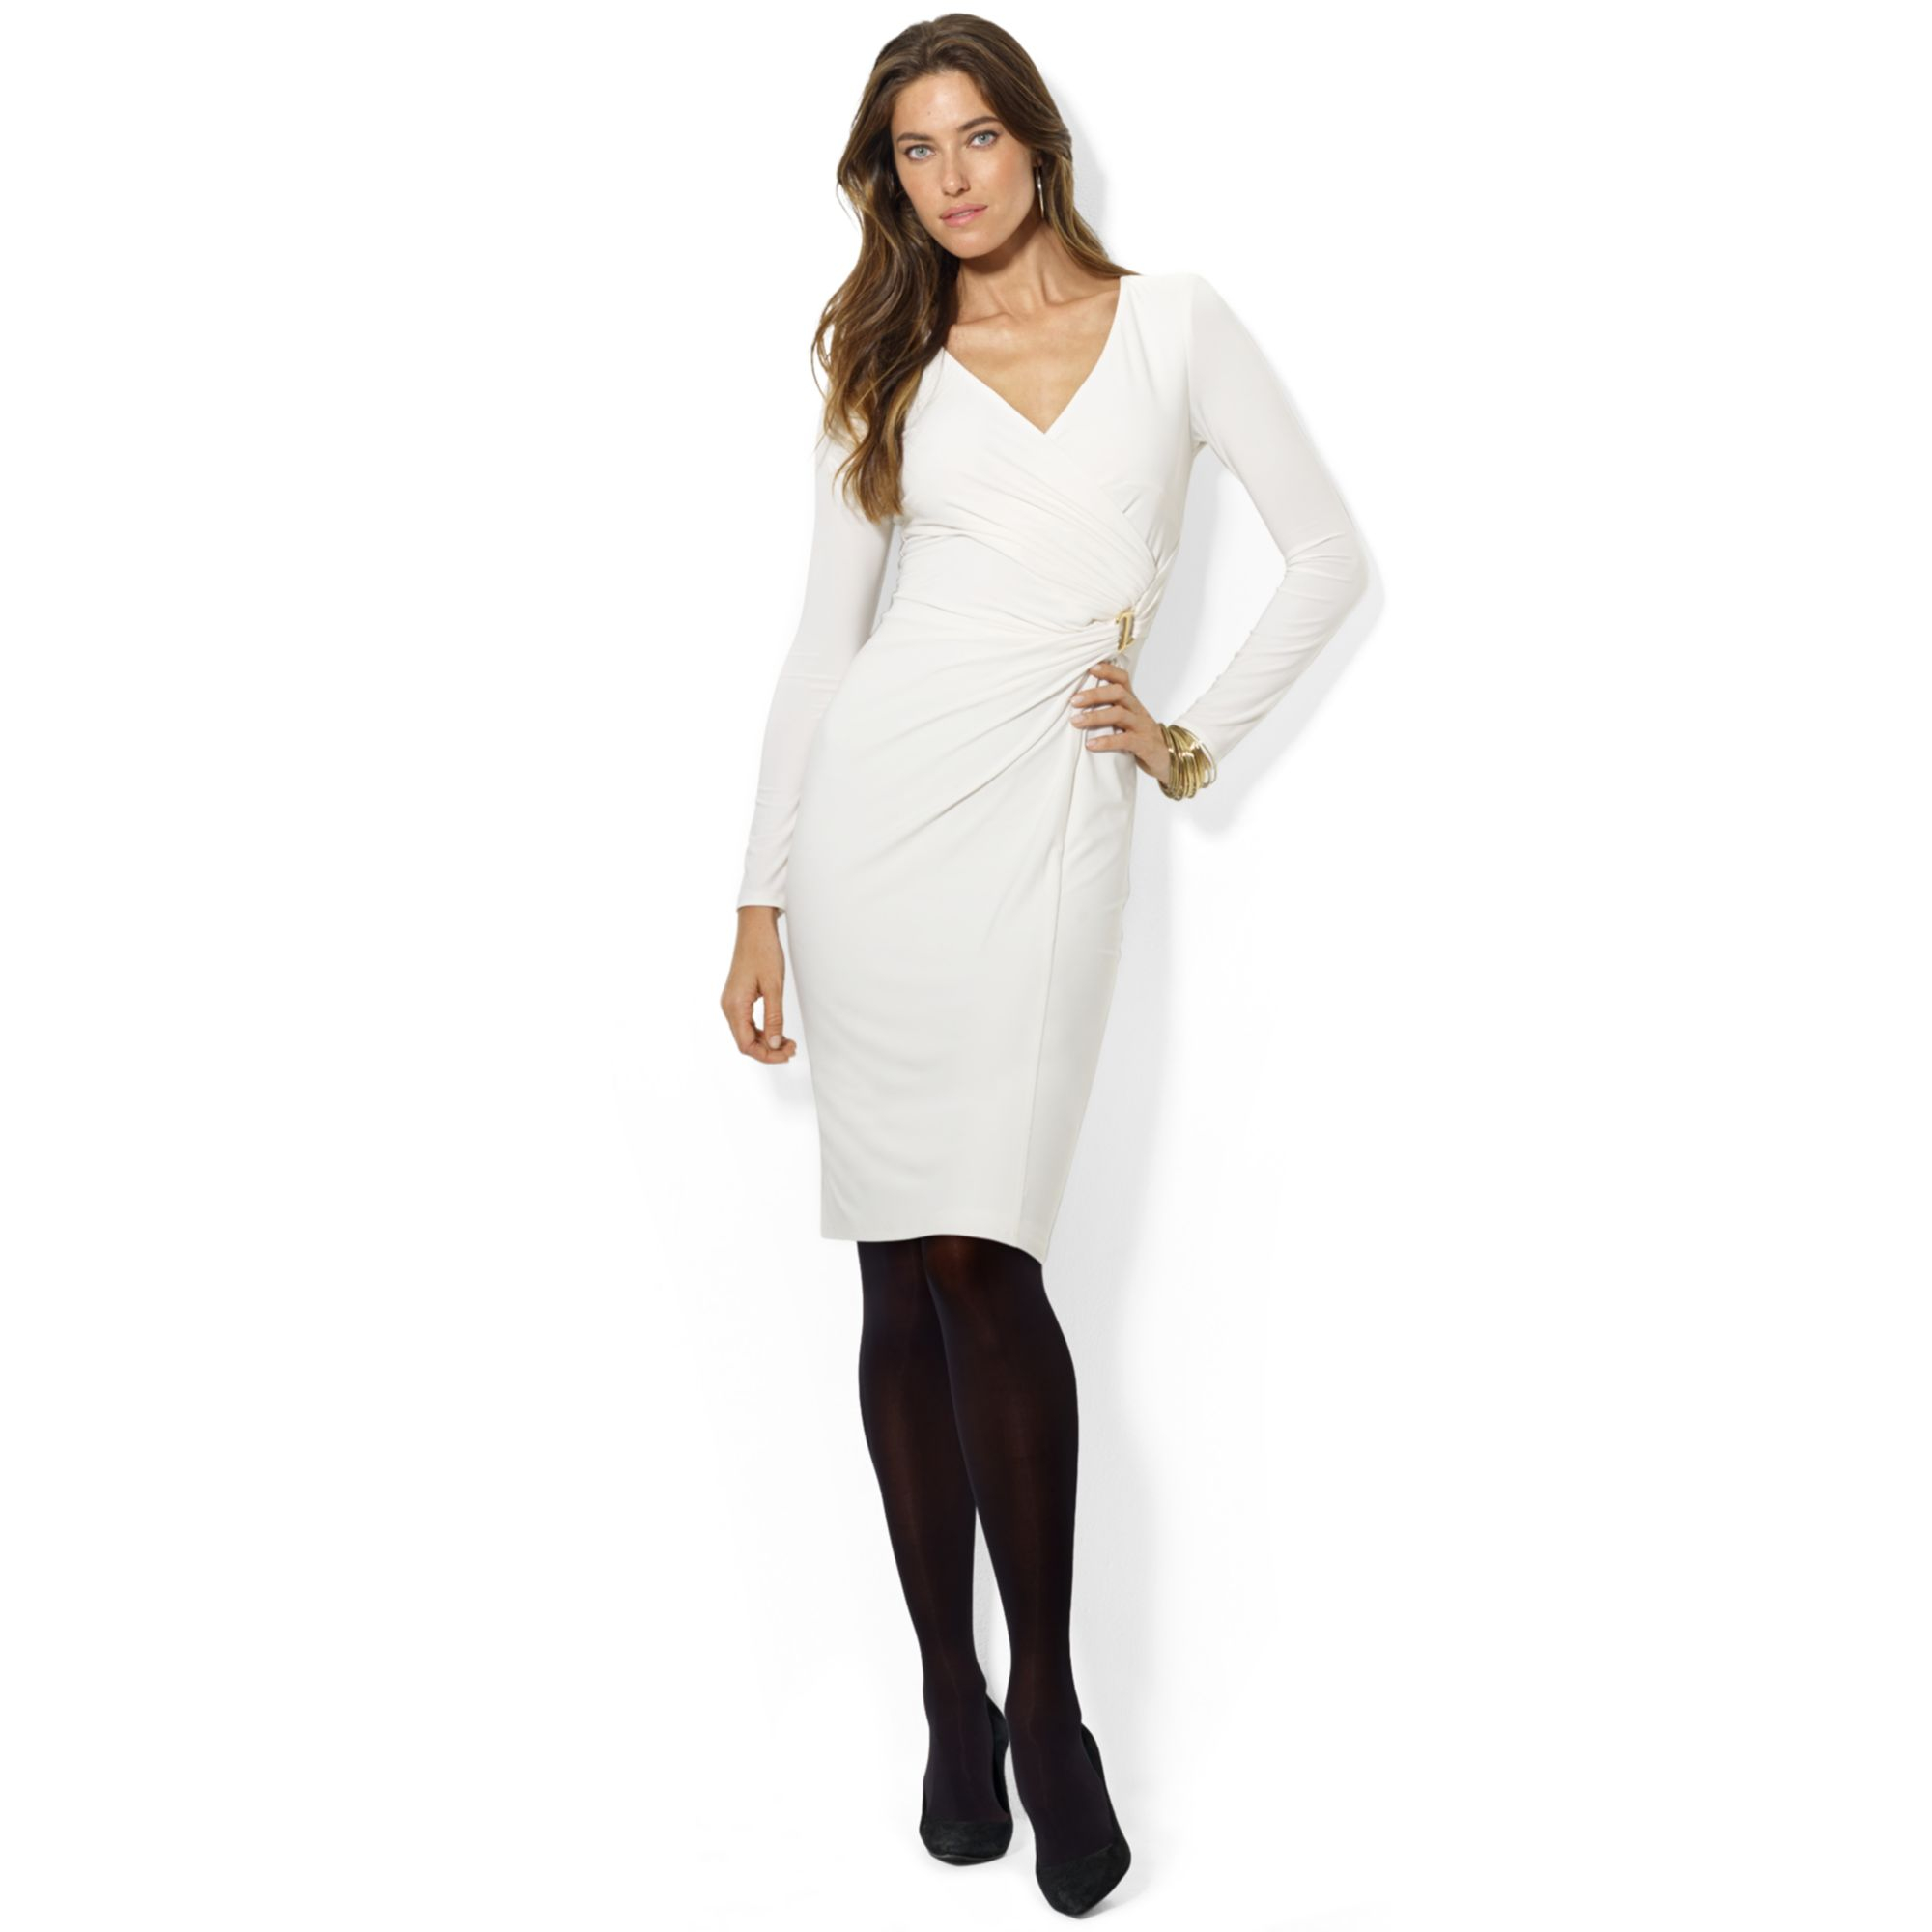 Lauren ralph lauren buckle long sleeve sweater dress